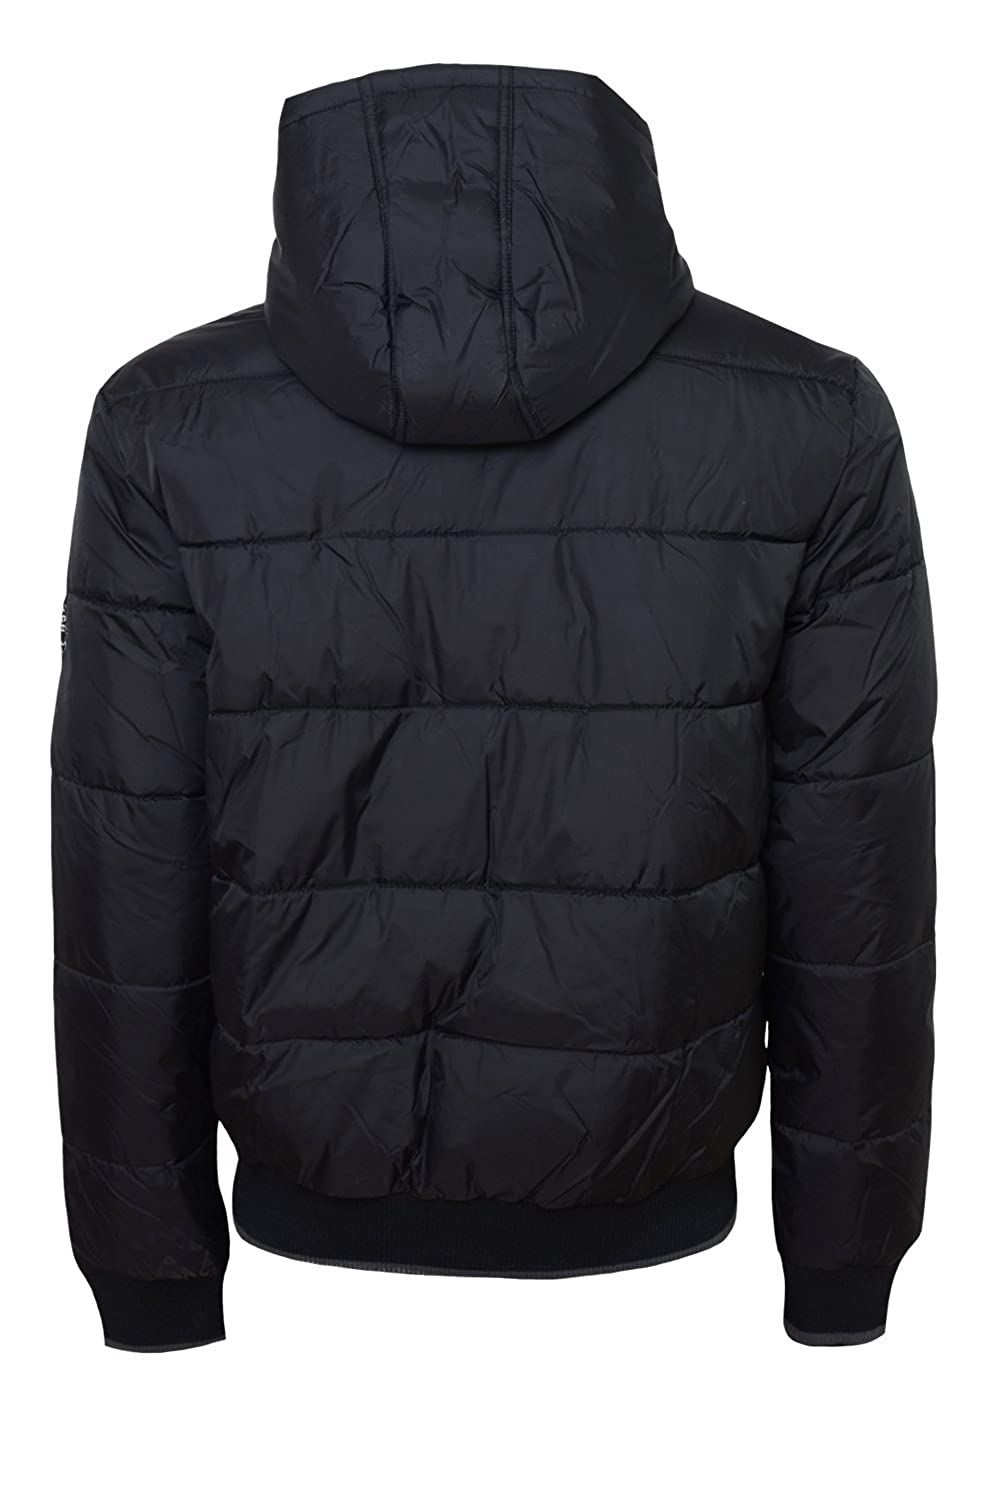 Crosshatch Mens Awesent Black Jacket - Black - X Large: Amazon.co.uk:  Clothing